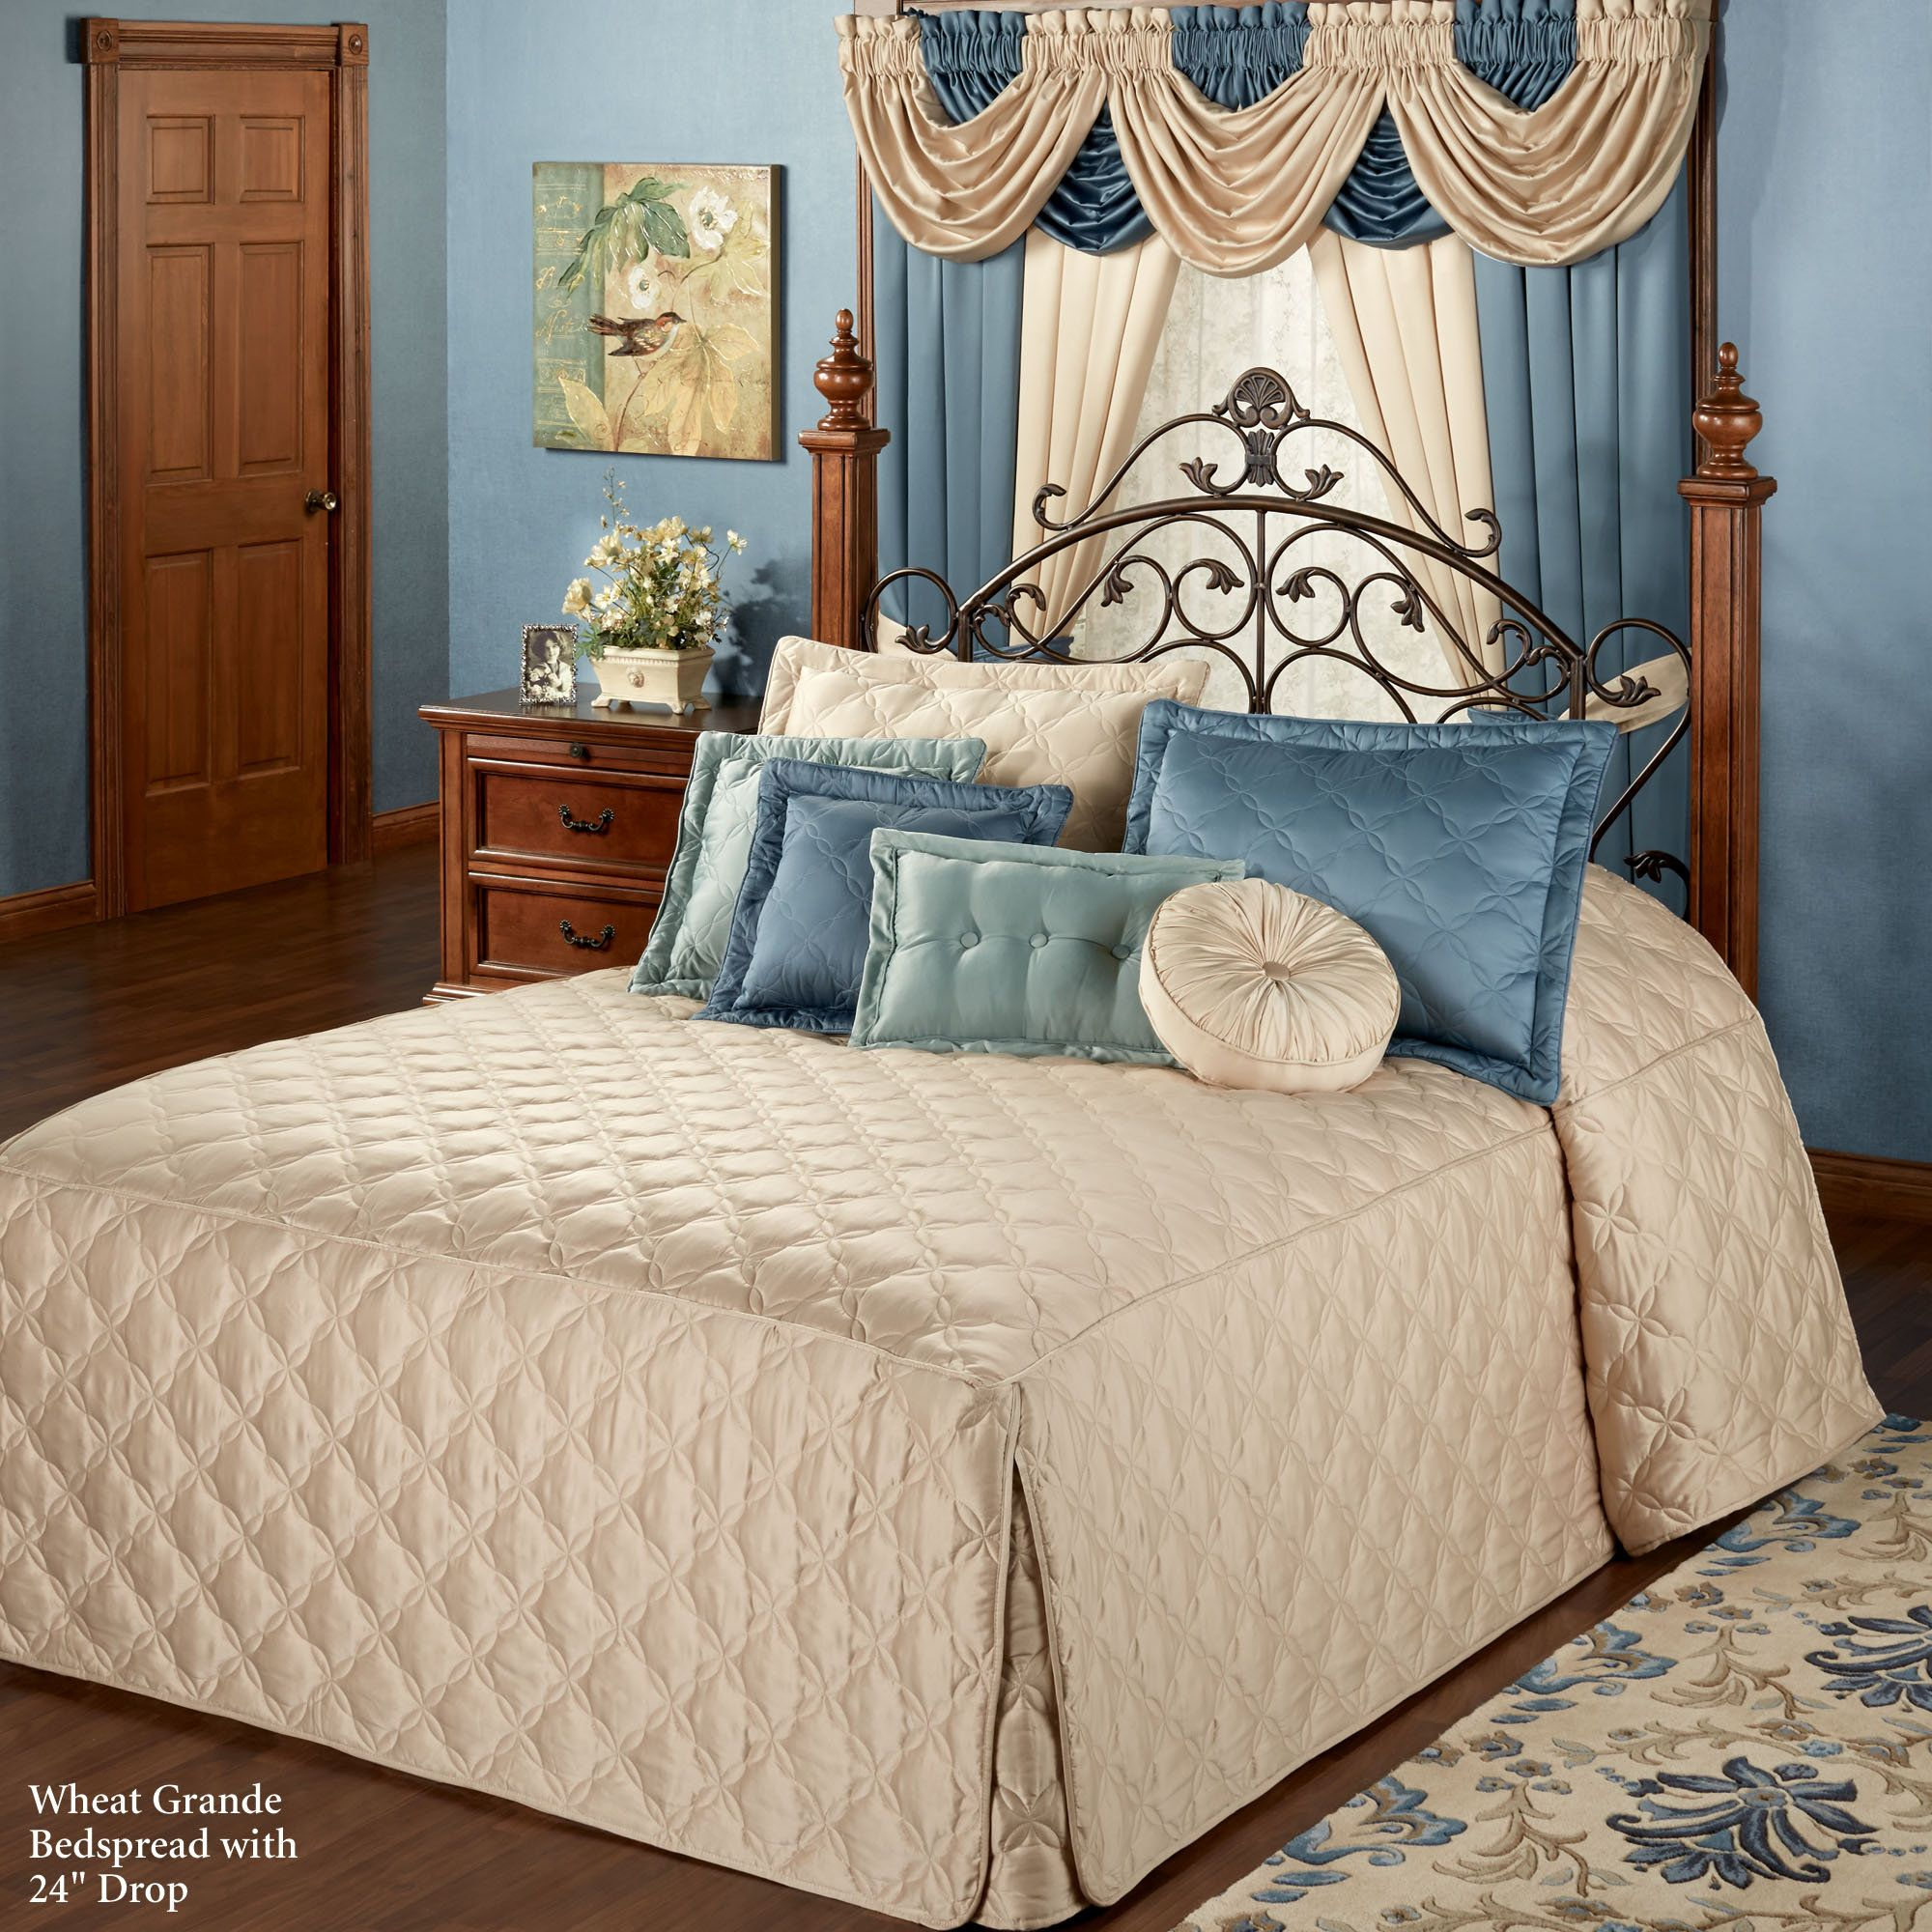 image taupe sets bedding cover bedspreads full curtain covers curtains recommended concept the duvet size country most of